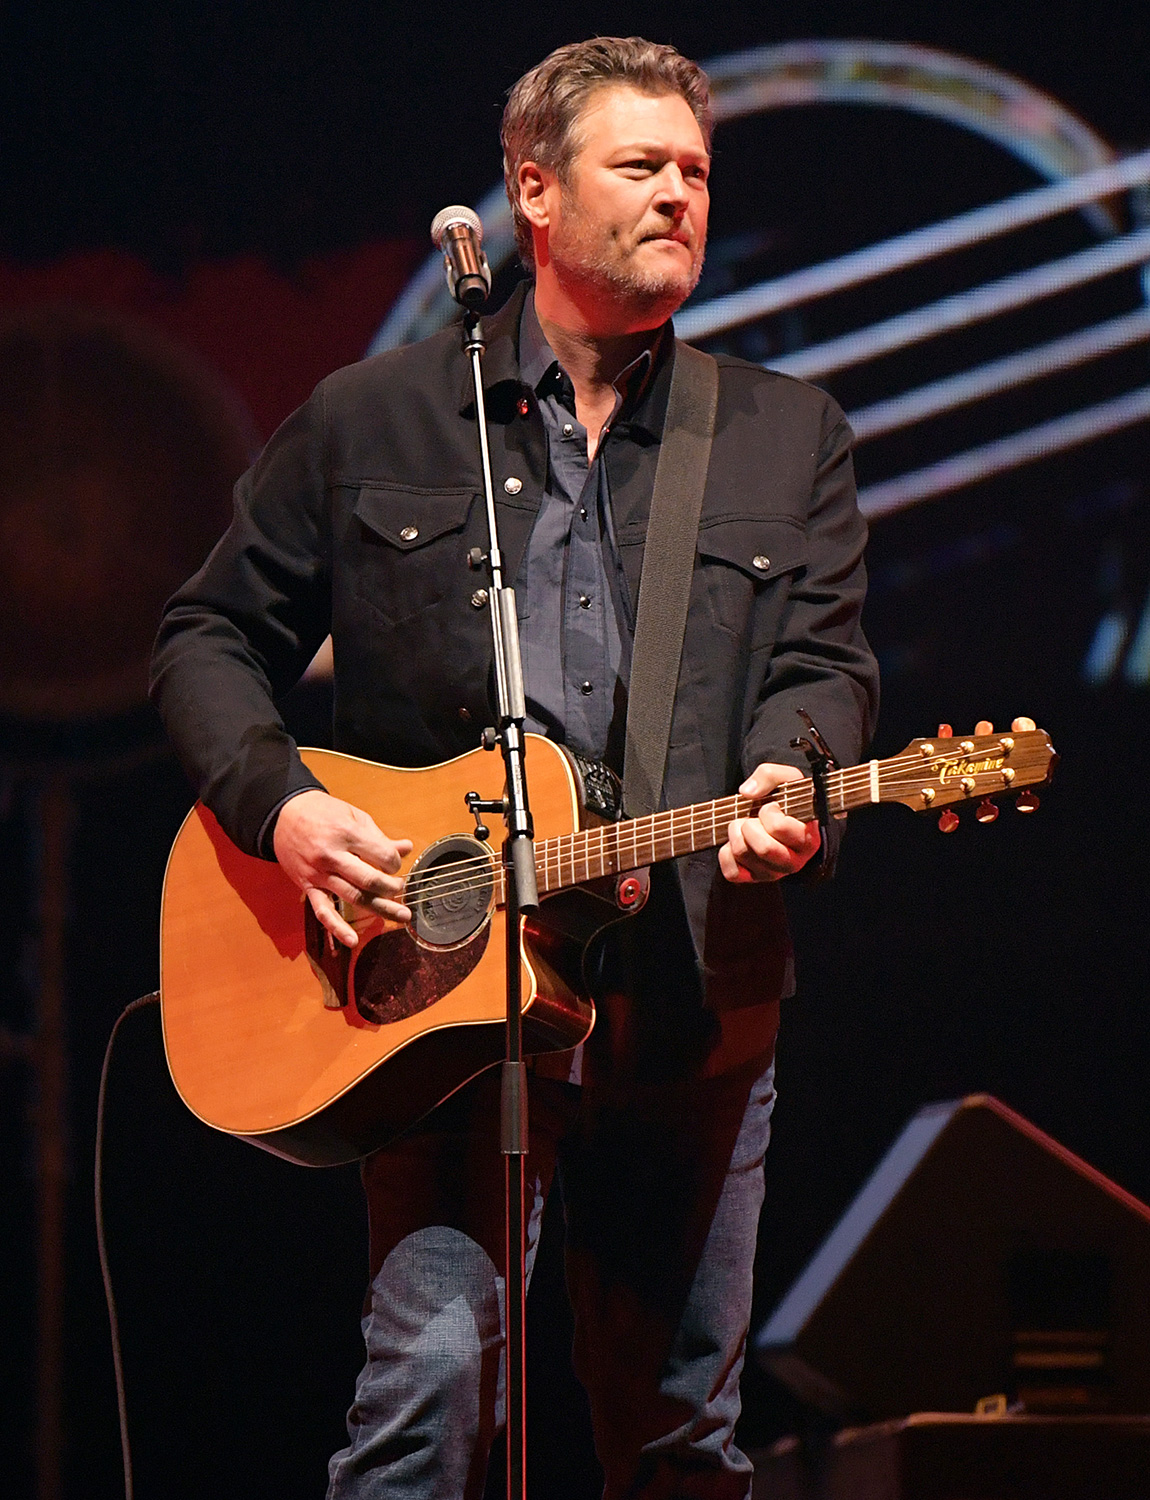 Blake Shelton performs at All for the Hall: Under the Influence Benefiting the Country Music Hall of Fame and Museum at Bridgestone Arena on February 10, 2020, in Nashville, Tennessee